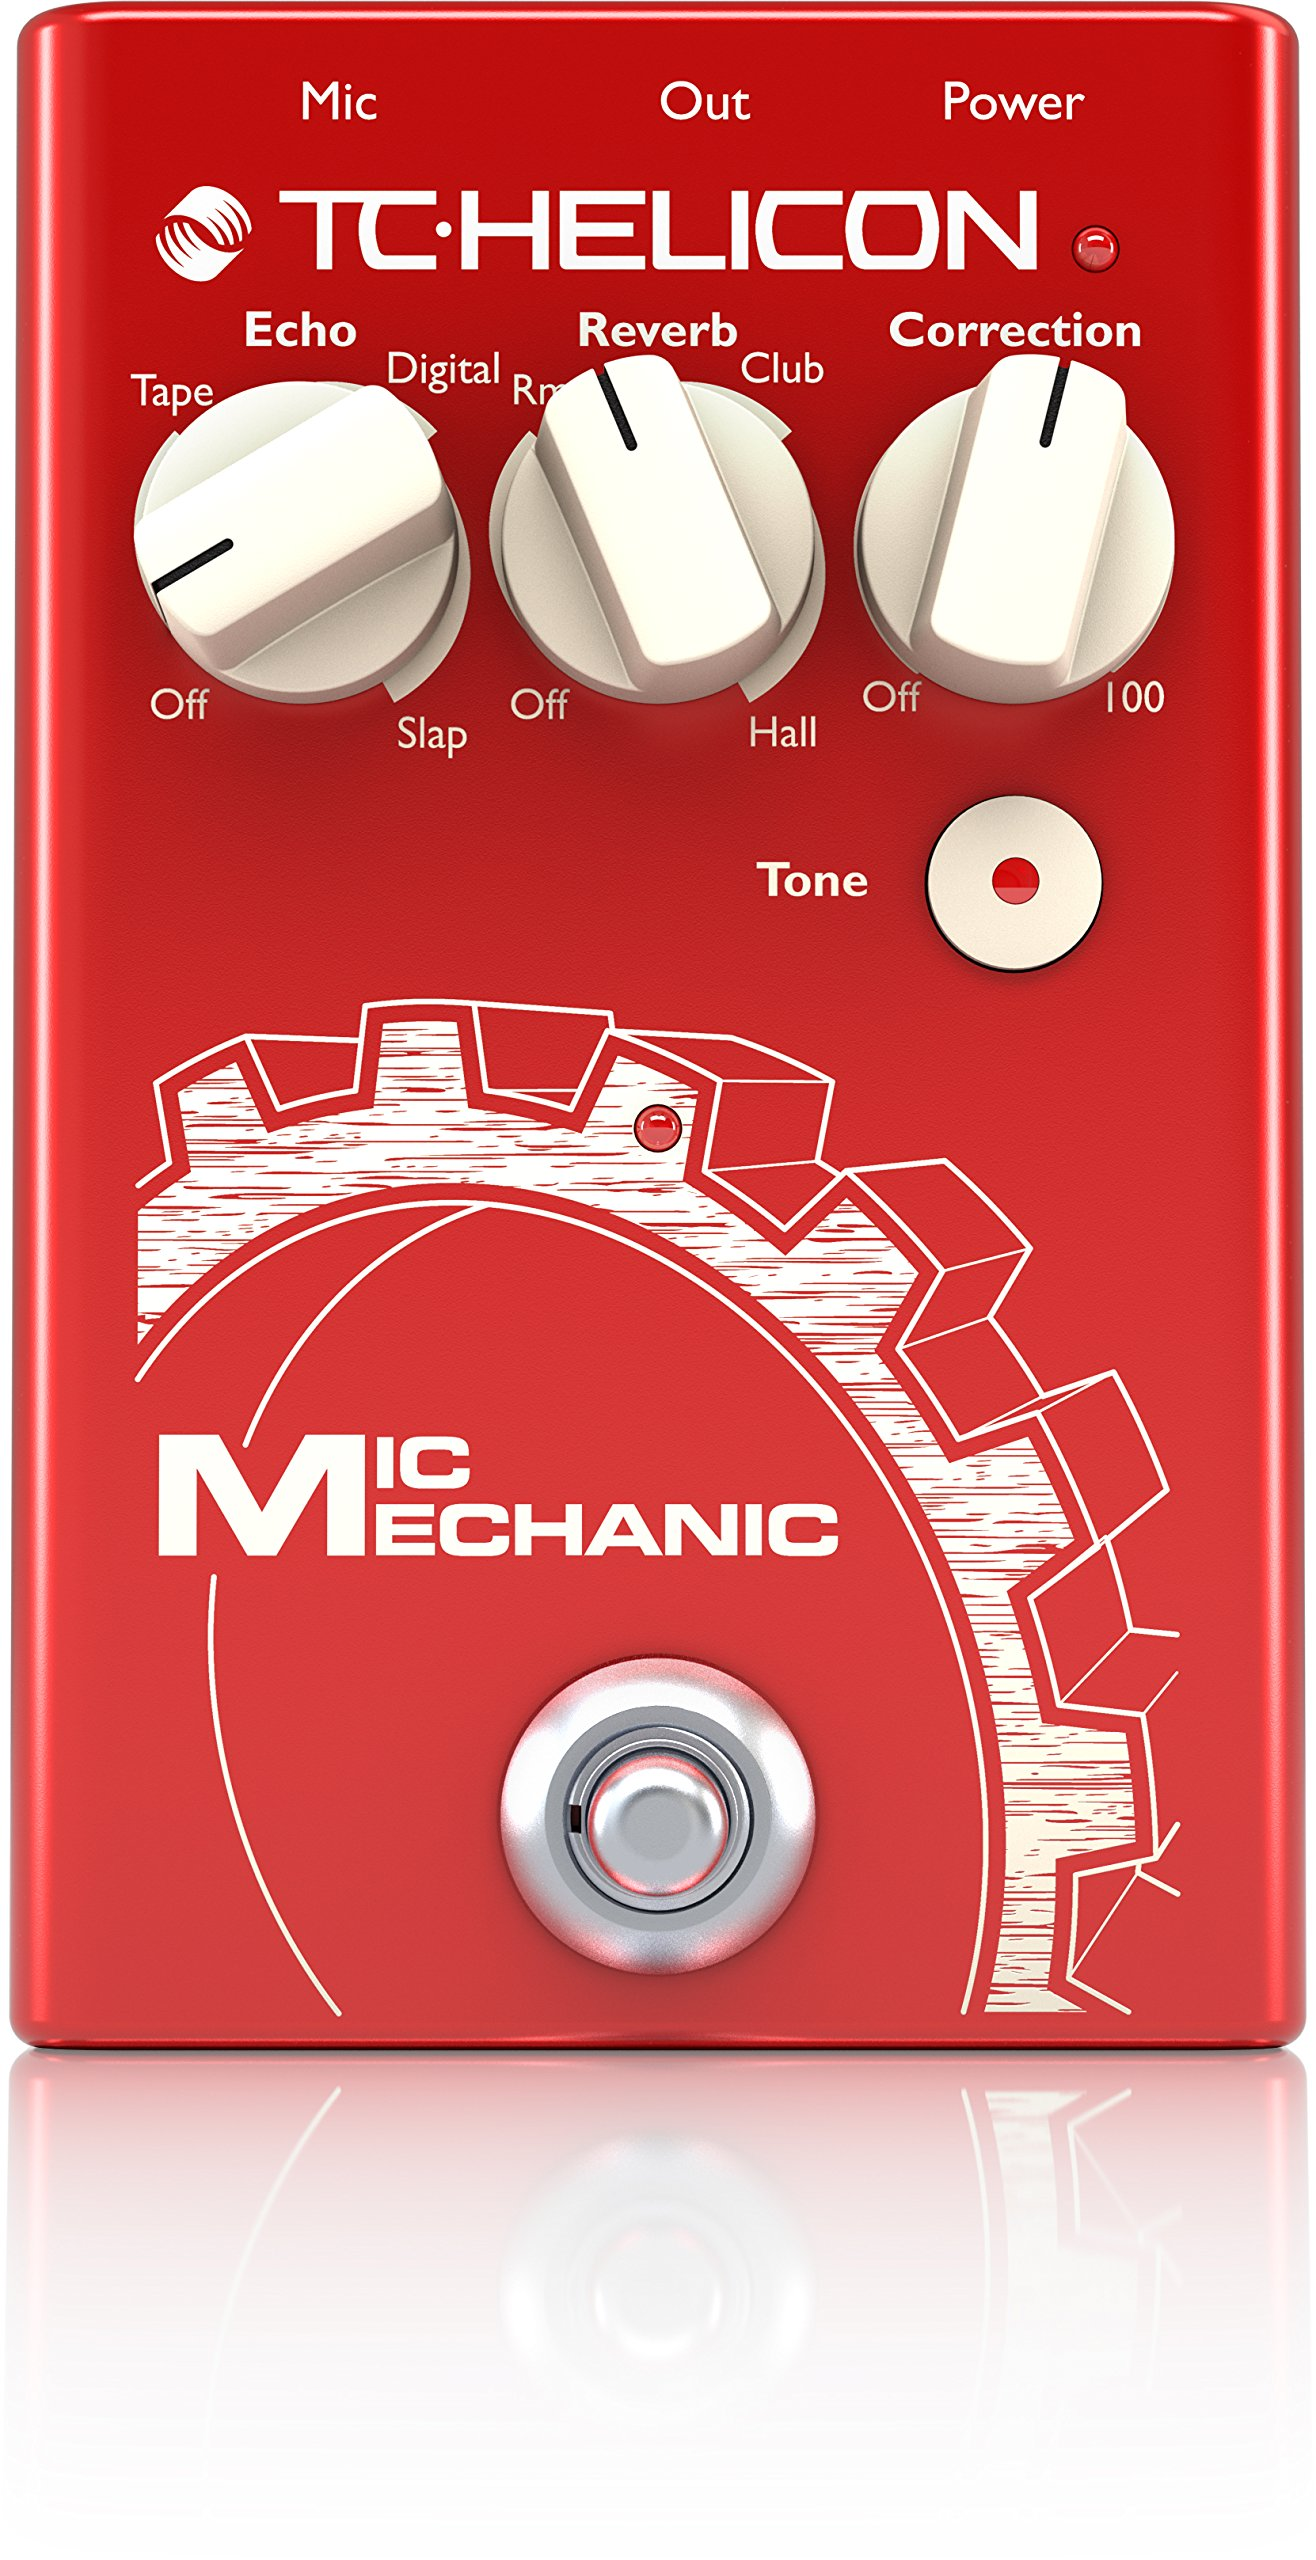 TC-Helicon Mic Mechanic 2 by TC-Helicon